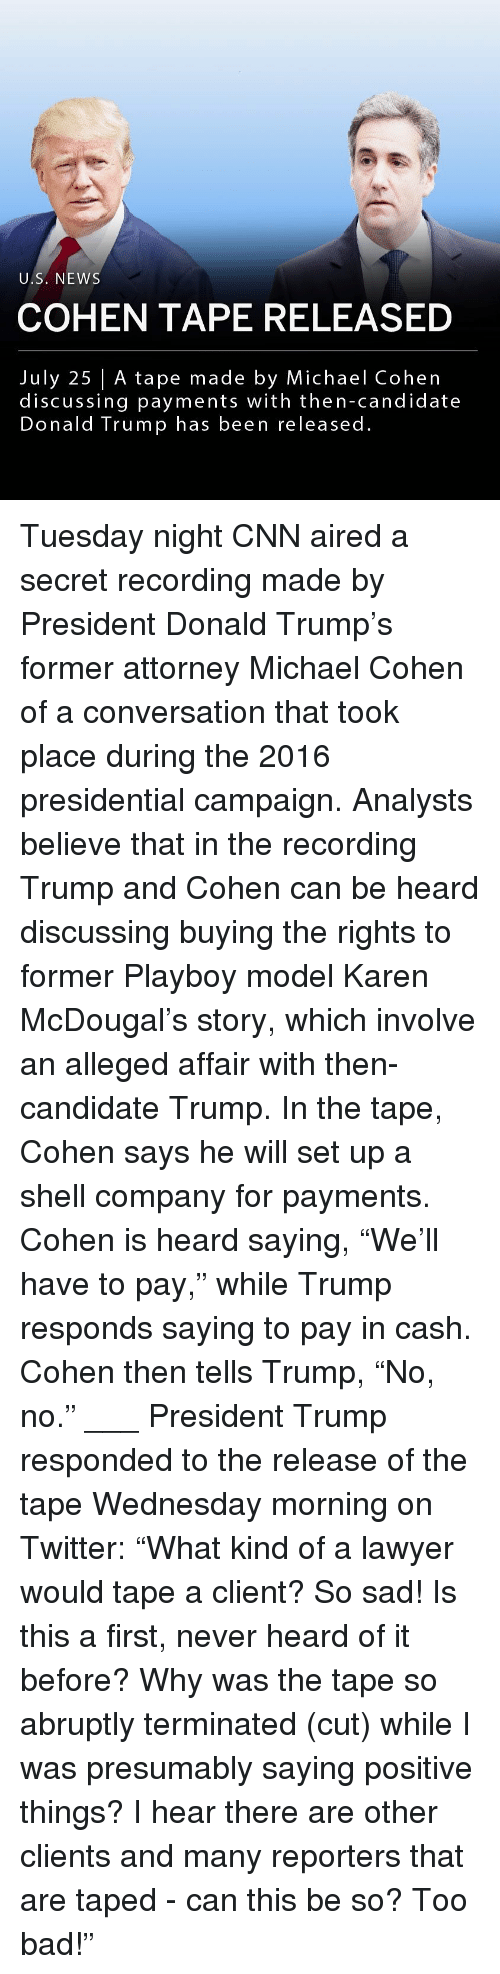 "Bad, cnn.com, and Donald Trump: U.S. NEWS  COHEN TAPE RELEASED  July 25 | A tape made by Michael Cohen  discussing payments with then-candidate  Donald Trump has been released. Tuesday night CNN aired a secret recording made by President Donald Trump's former attorney Michael Cohen of a conversation that took place during the 2016 presidential campaign. Analysts believe that in the recording Trump and Cohen can be heard discussing buying the rights to former Playboy model Karen McDougal's story, which involve an alleged affair with then-candidate Trump. In the tape, Cohen says he will set up a shell company for payments. Cohen is heard saying, ""We'll have to pay,"" while Trump responds saying to pay in cash. Cohen then tells Trump, ""No, no."" ___ President Trump responded to the release of the tape Wednesday morning on Twitter: ""What kind of a lawyer would tape a client? So sad! Is this a first, never heard of it before? Why was the tape so abruptly terminated (cut) while I was presumably saying positive things? I hear there are other clients and many reporters that are taped - can this be so? Too bad!"""